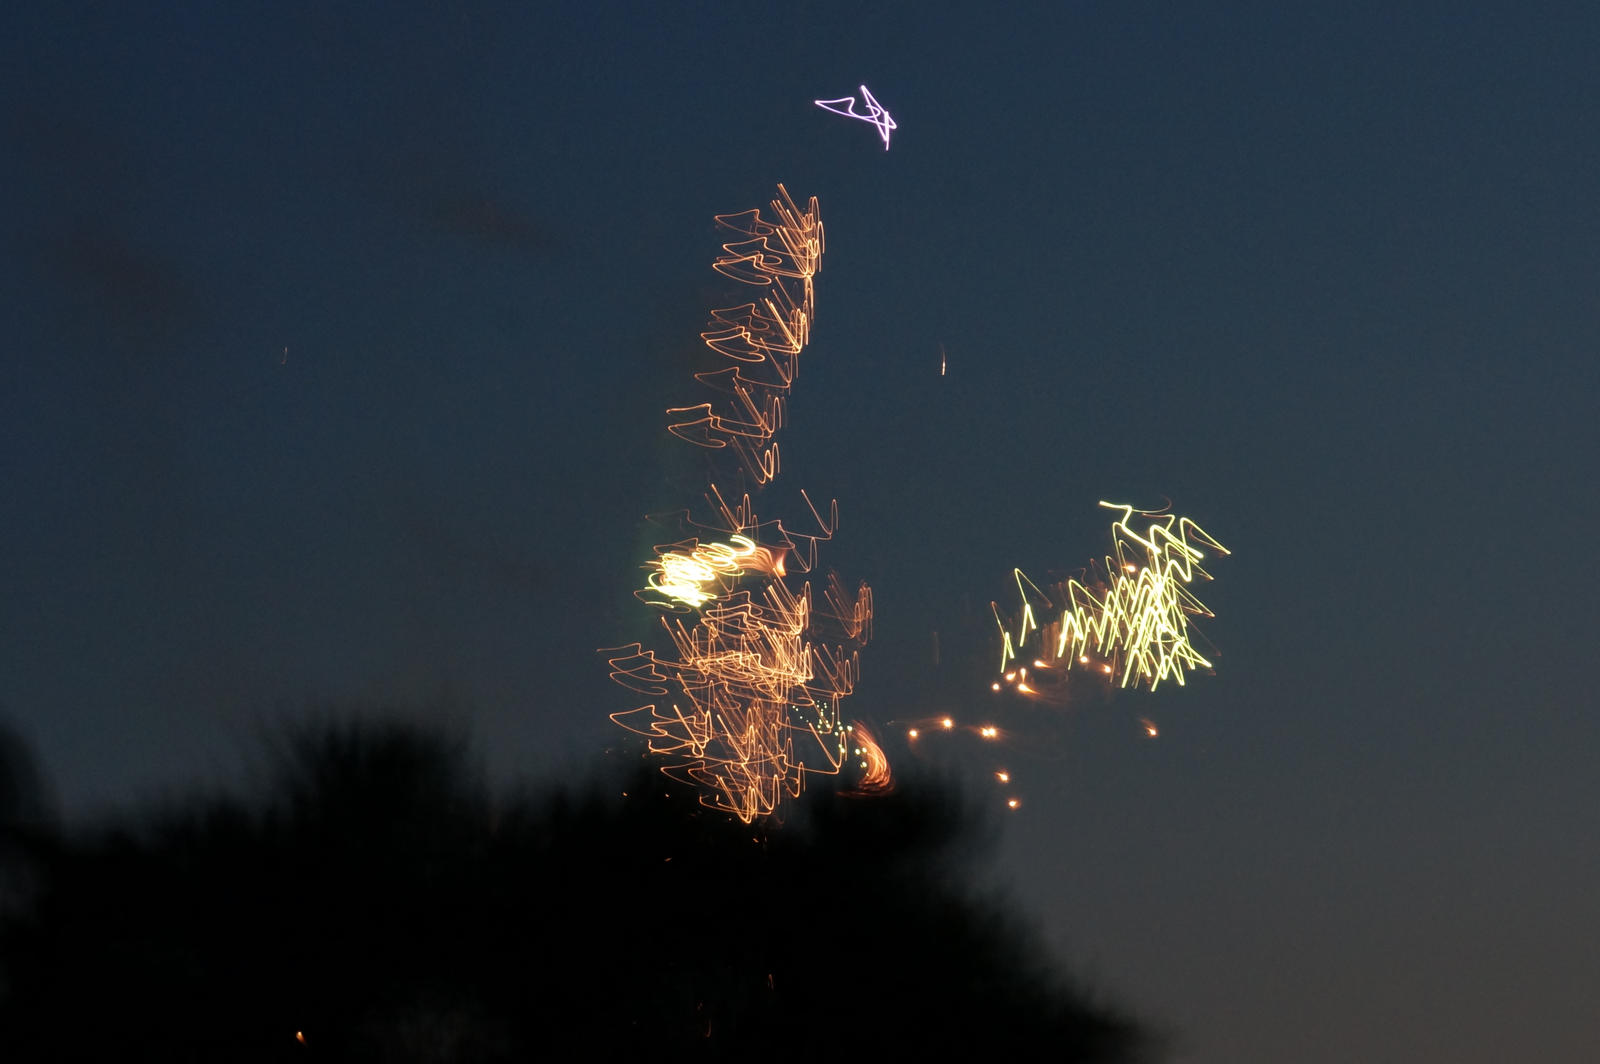 Distorted Fireworks 004